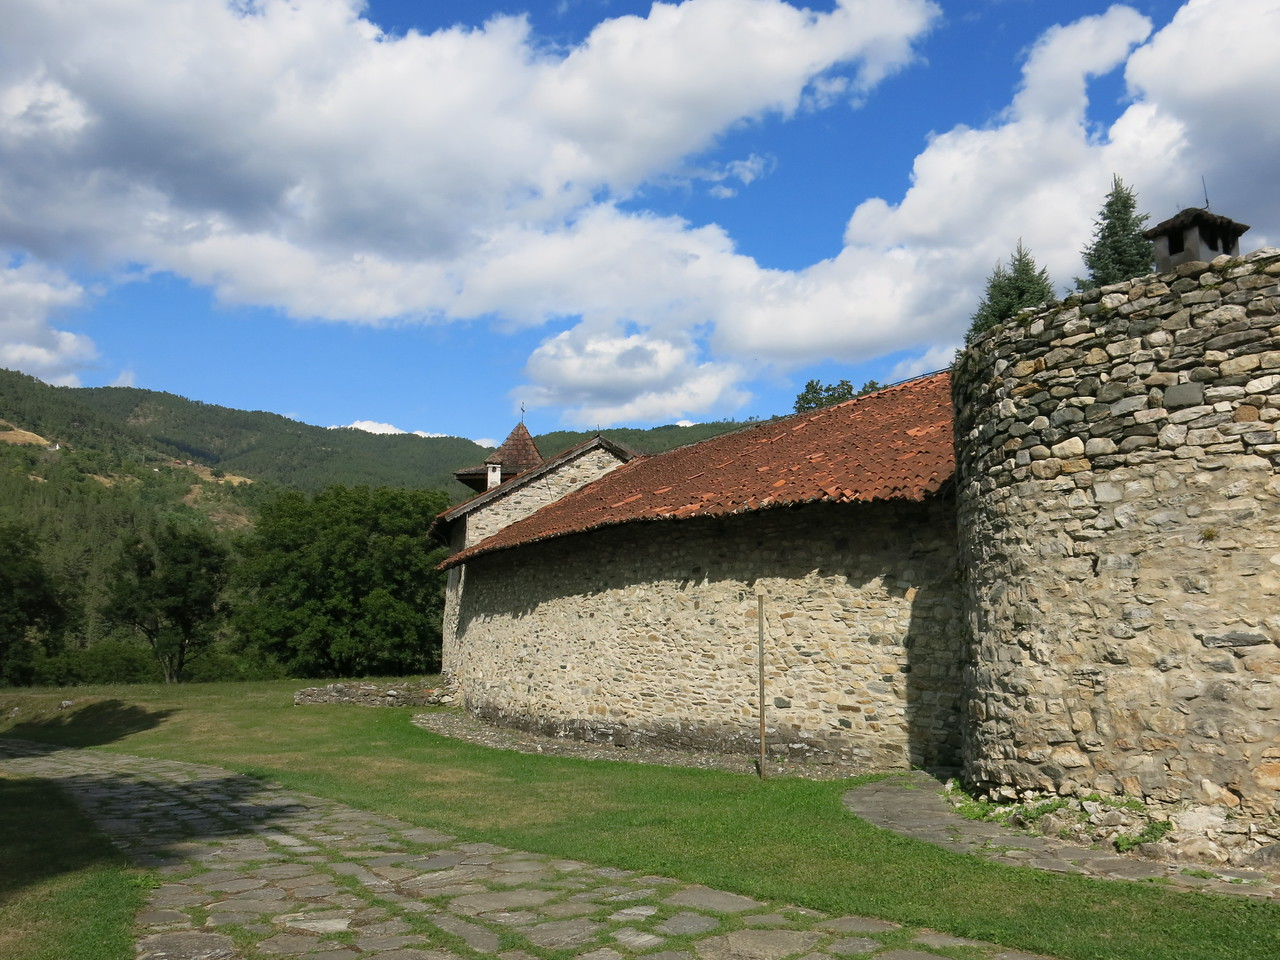 Fortifications around the monastery